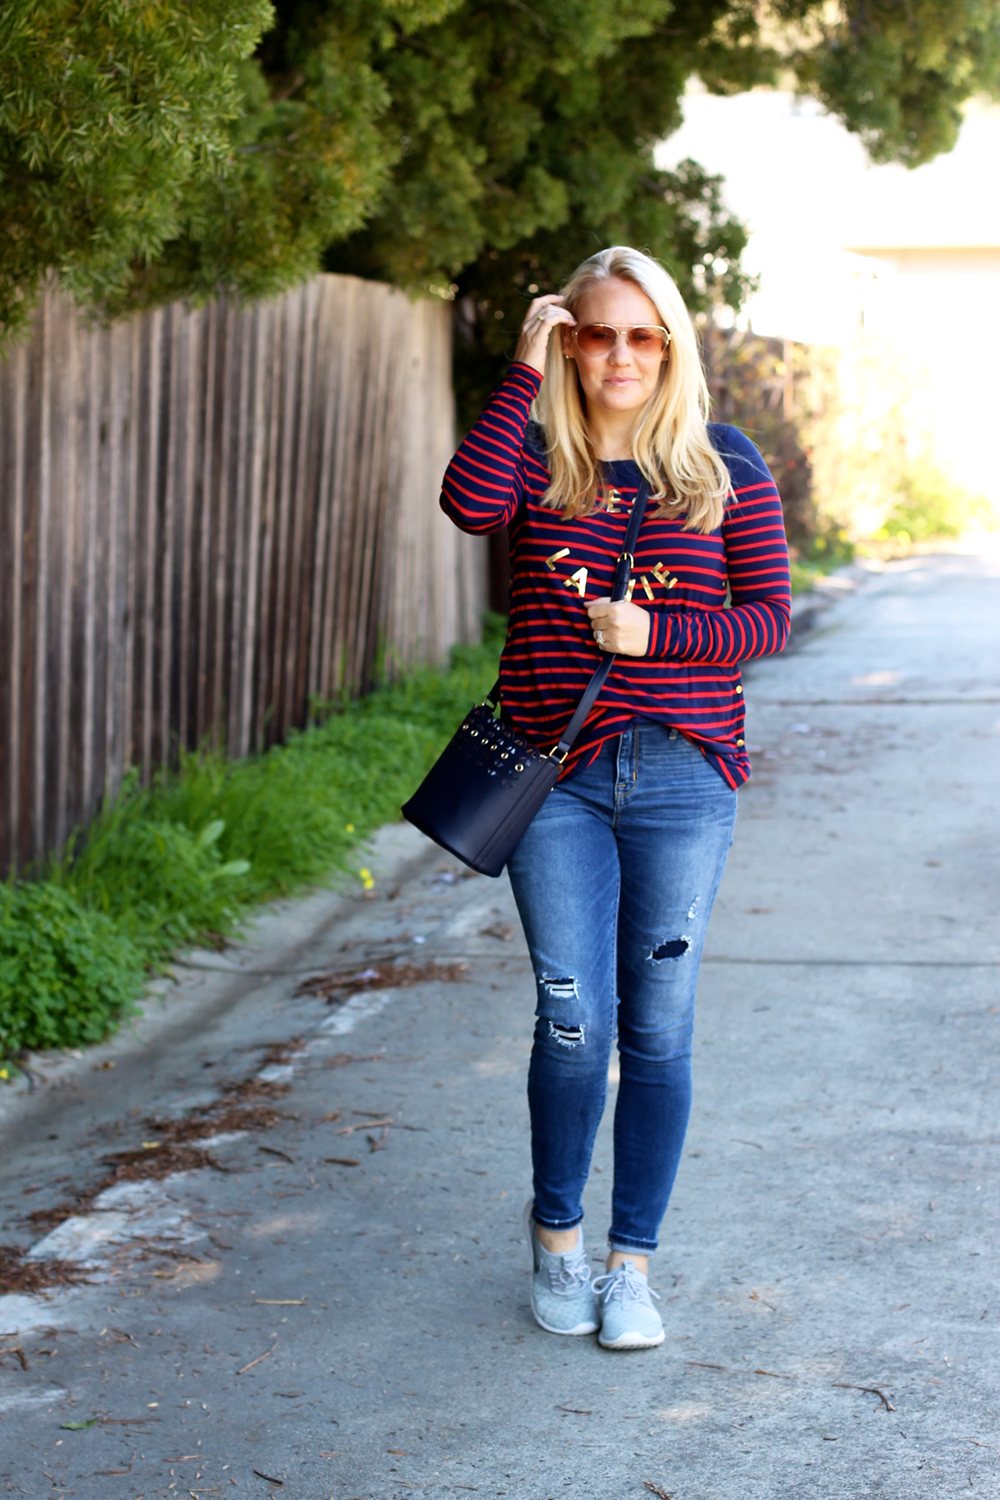 C'est La Vie-Everyday Mom Style-Mom Uniform-Nursing Top-Outfit Inspiration-Bay Area Fashion Blogger-Have Need Want 6